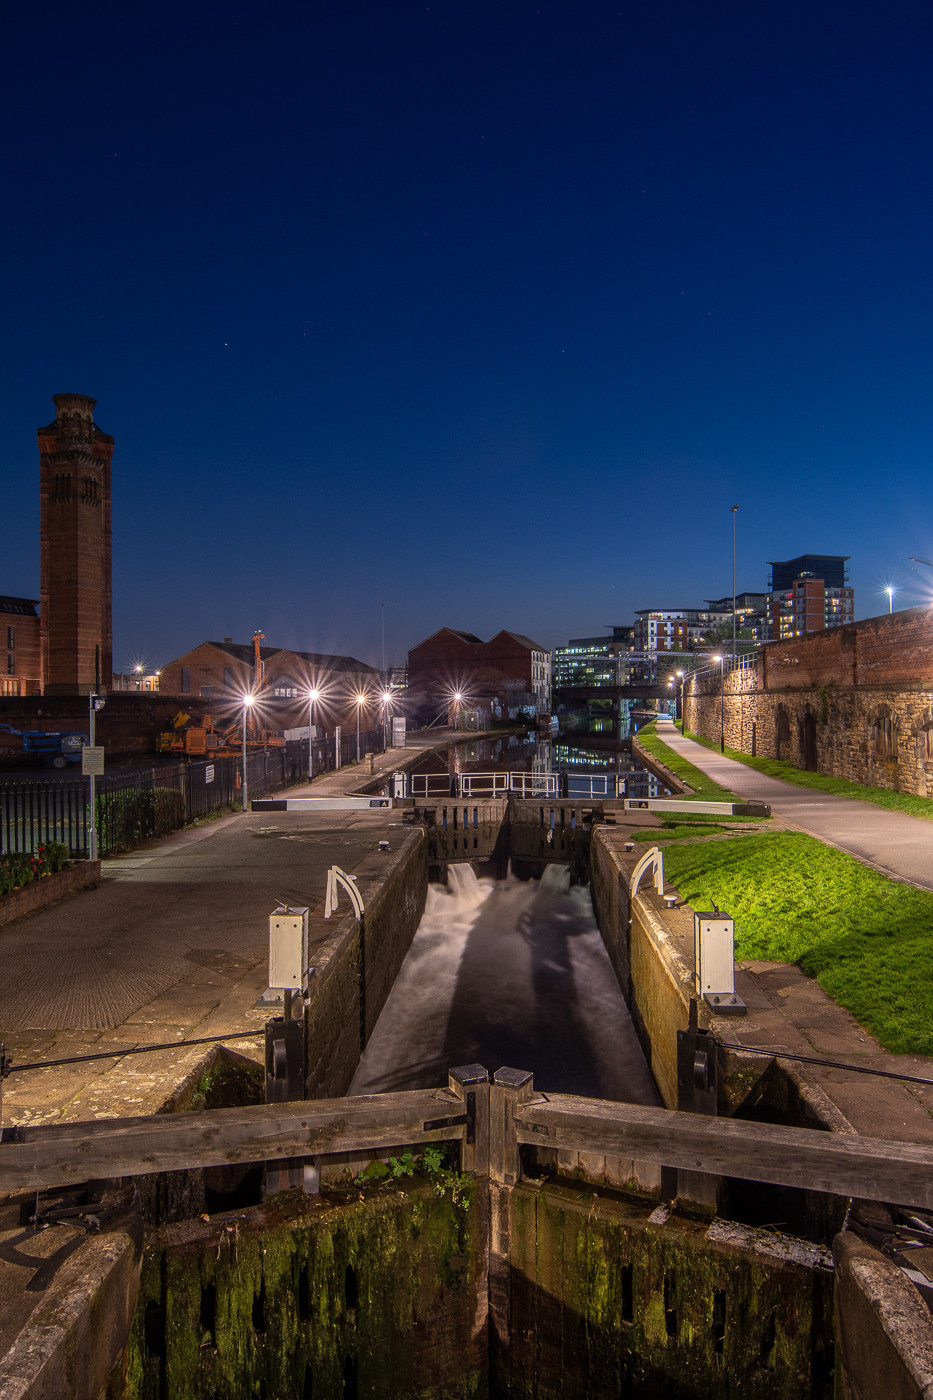 cityscape, bridgewater place, leeds liverpool canal, urban nightscape